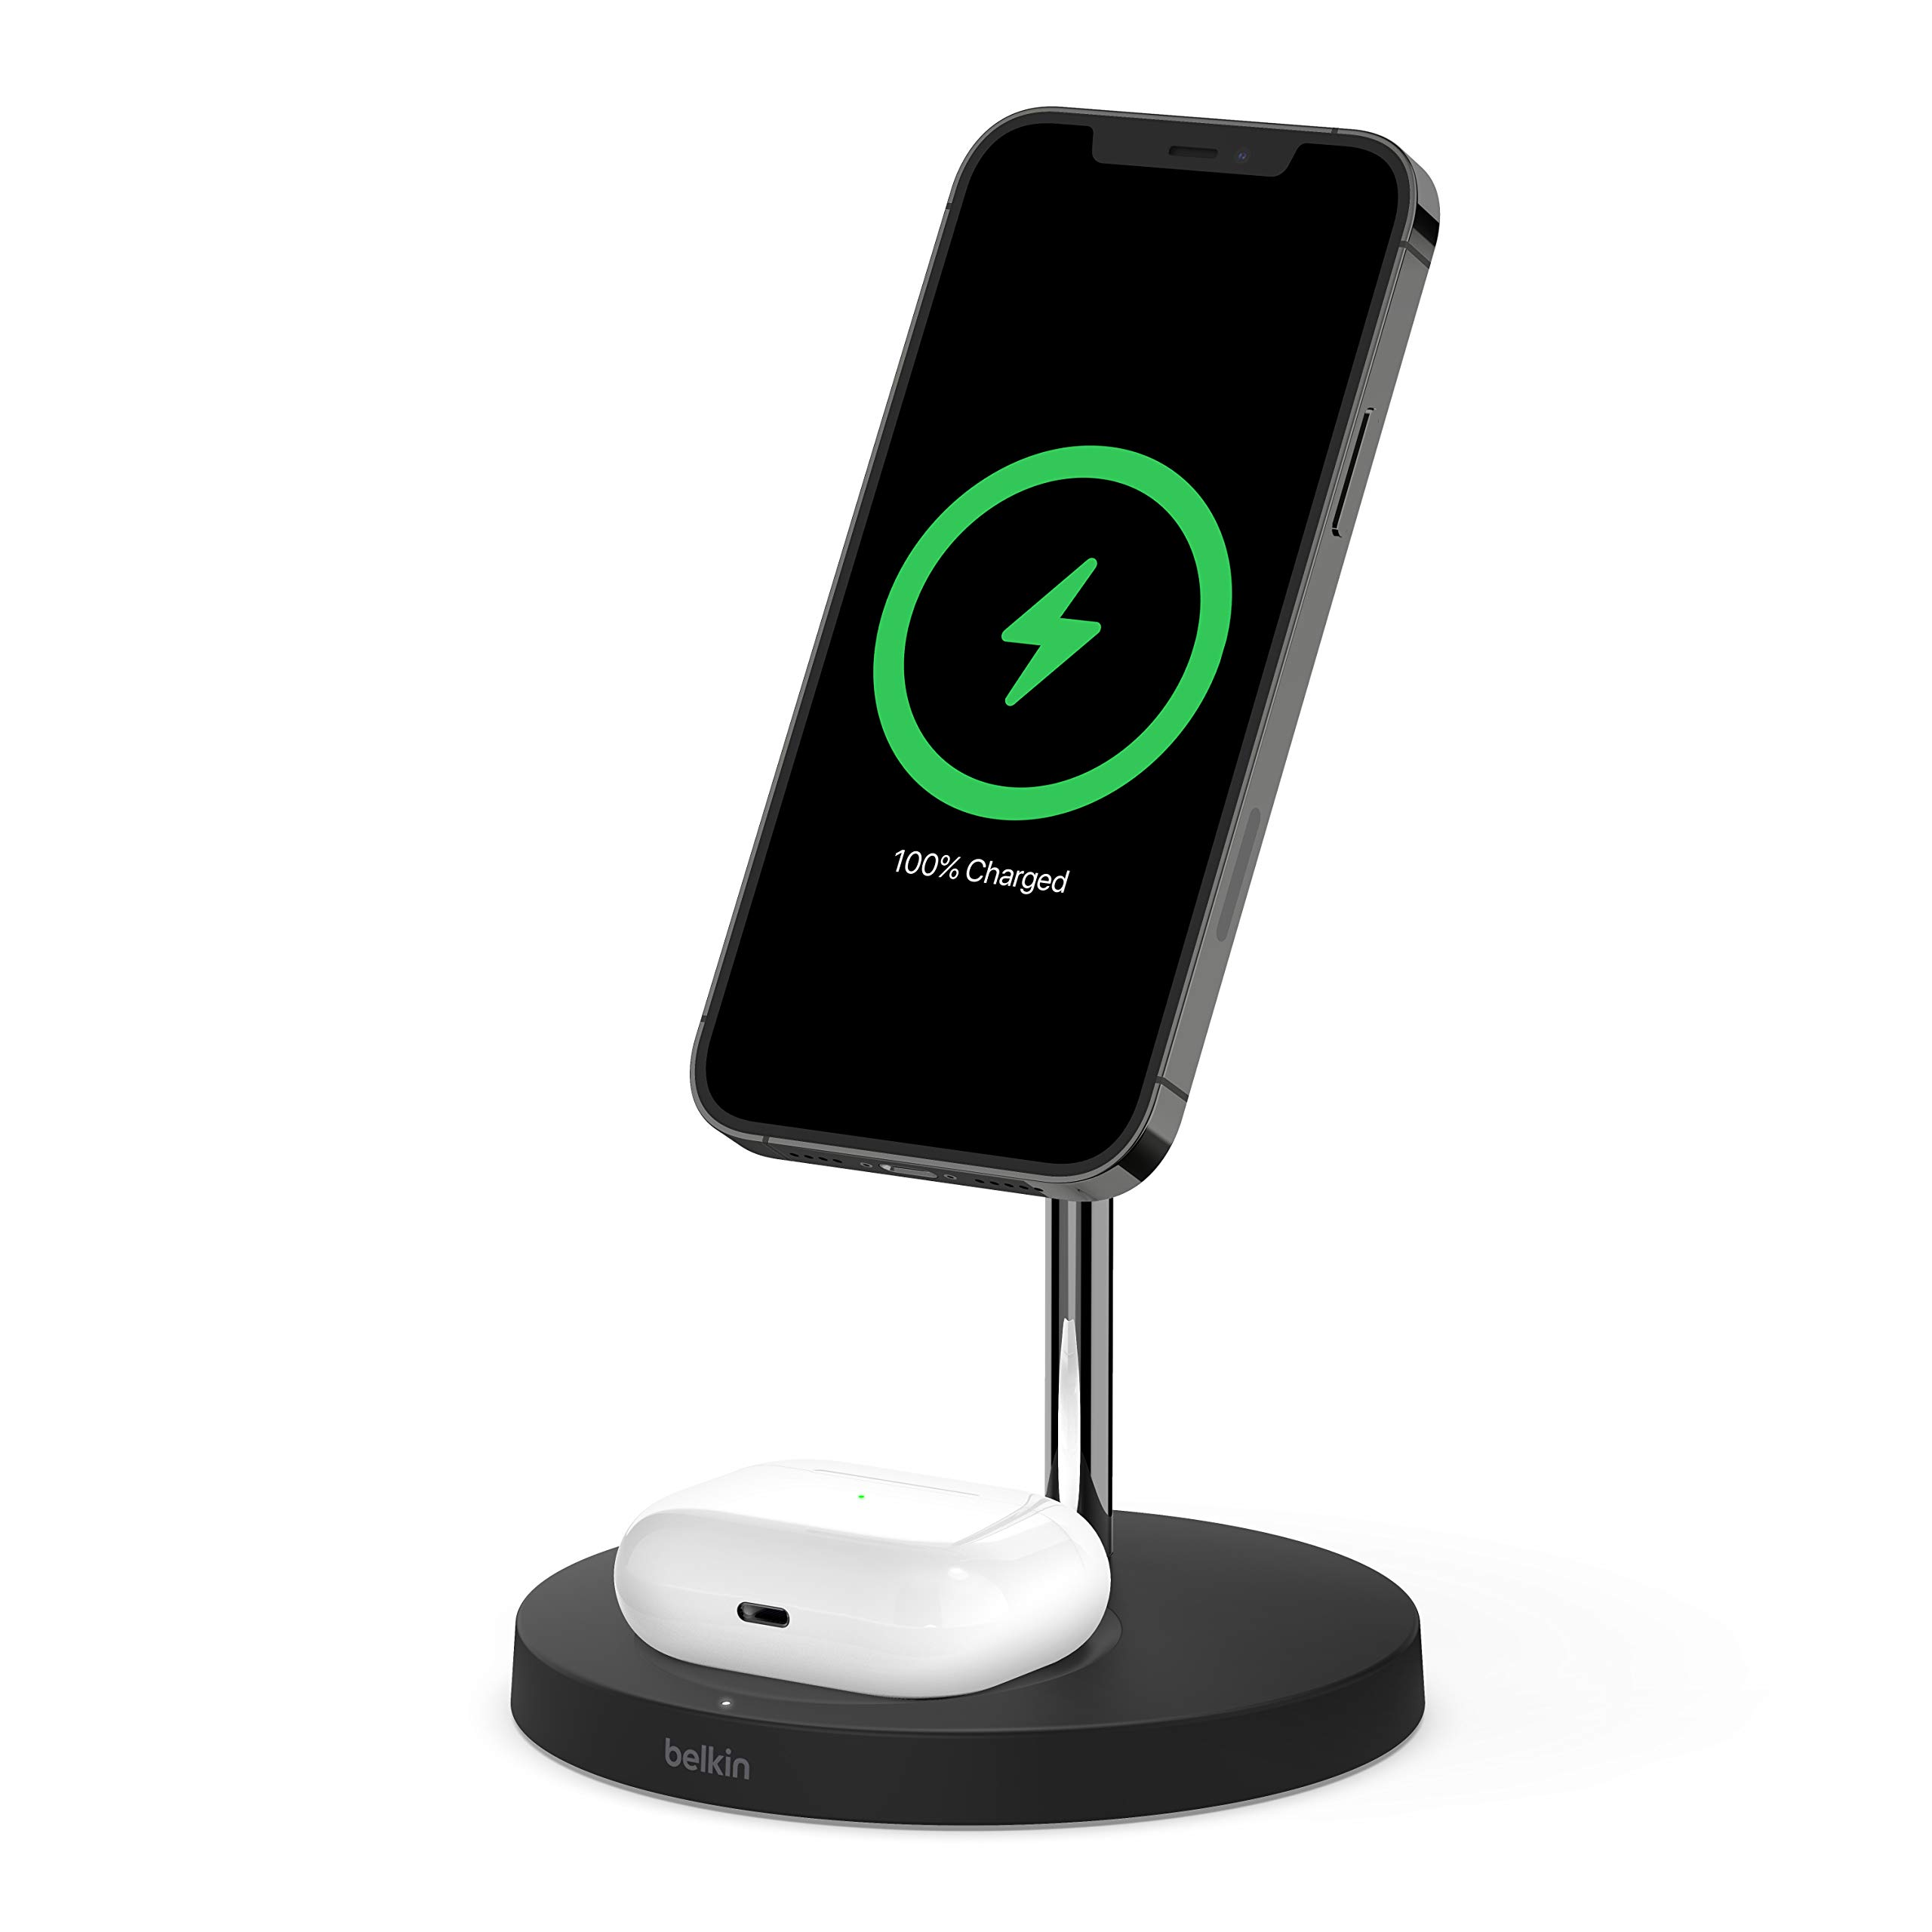 Belkin MagSafe 2-in-1 Wireless Charger, 15W Fast Charging iPhone Charger Stand for iPhone 12, 12 Pro, 12 Pro Max, 12 Mini, AirPods